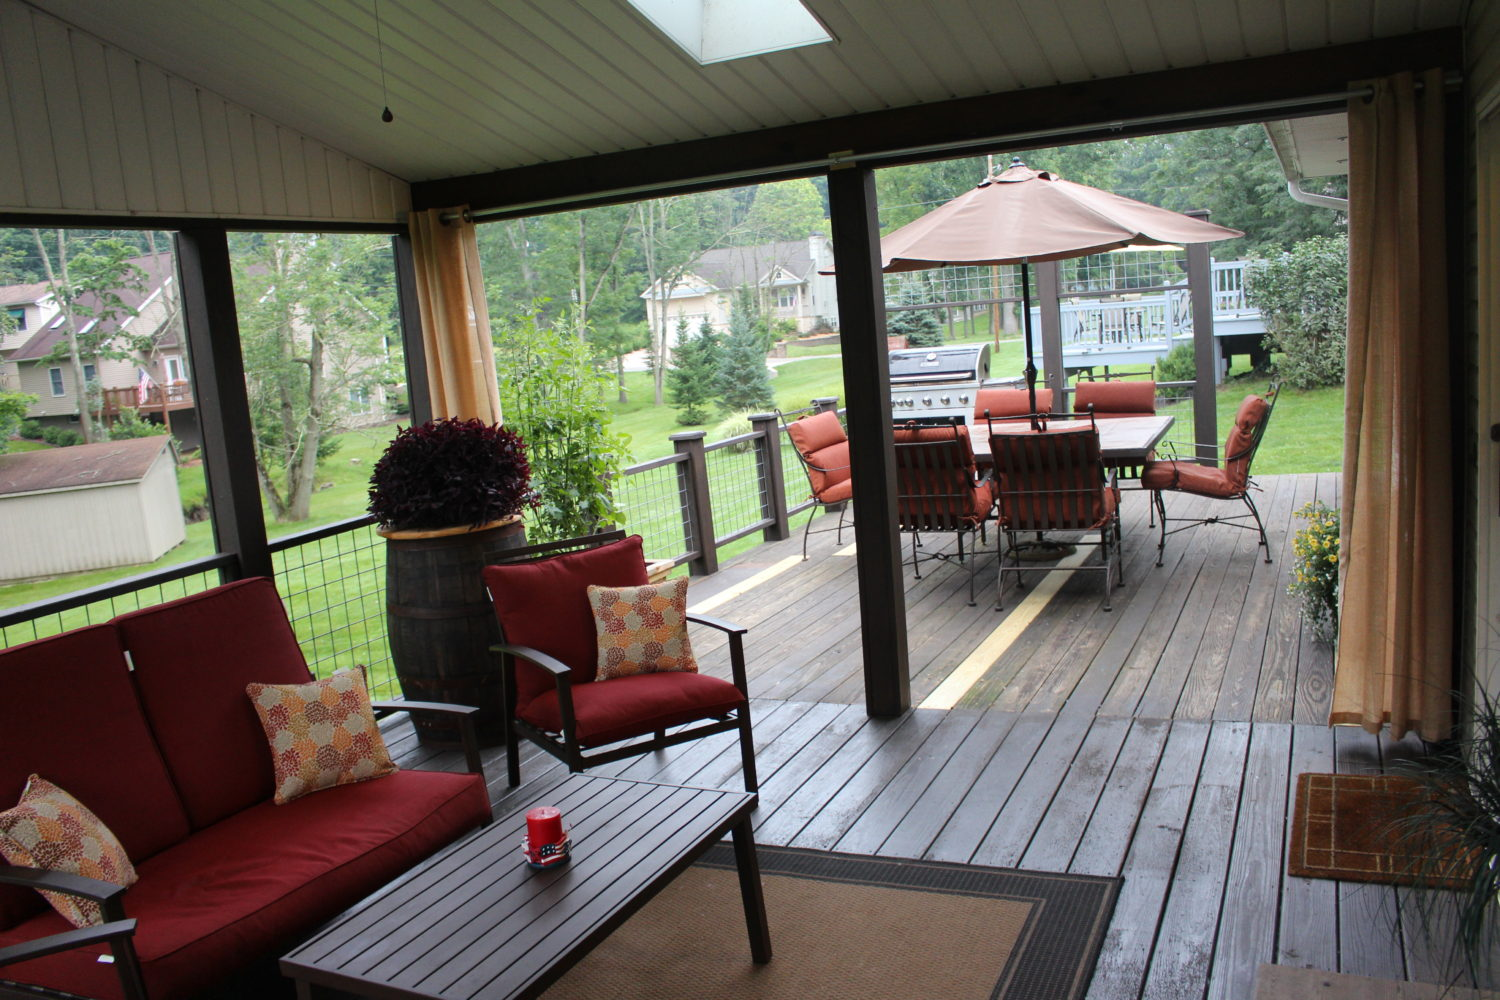 creating an outdoor living room from a screened in porch and deck